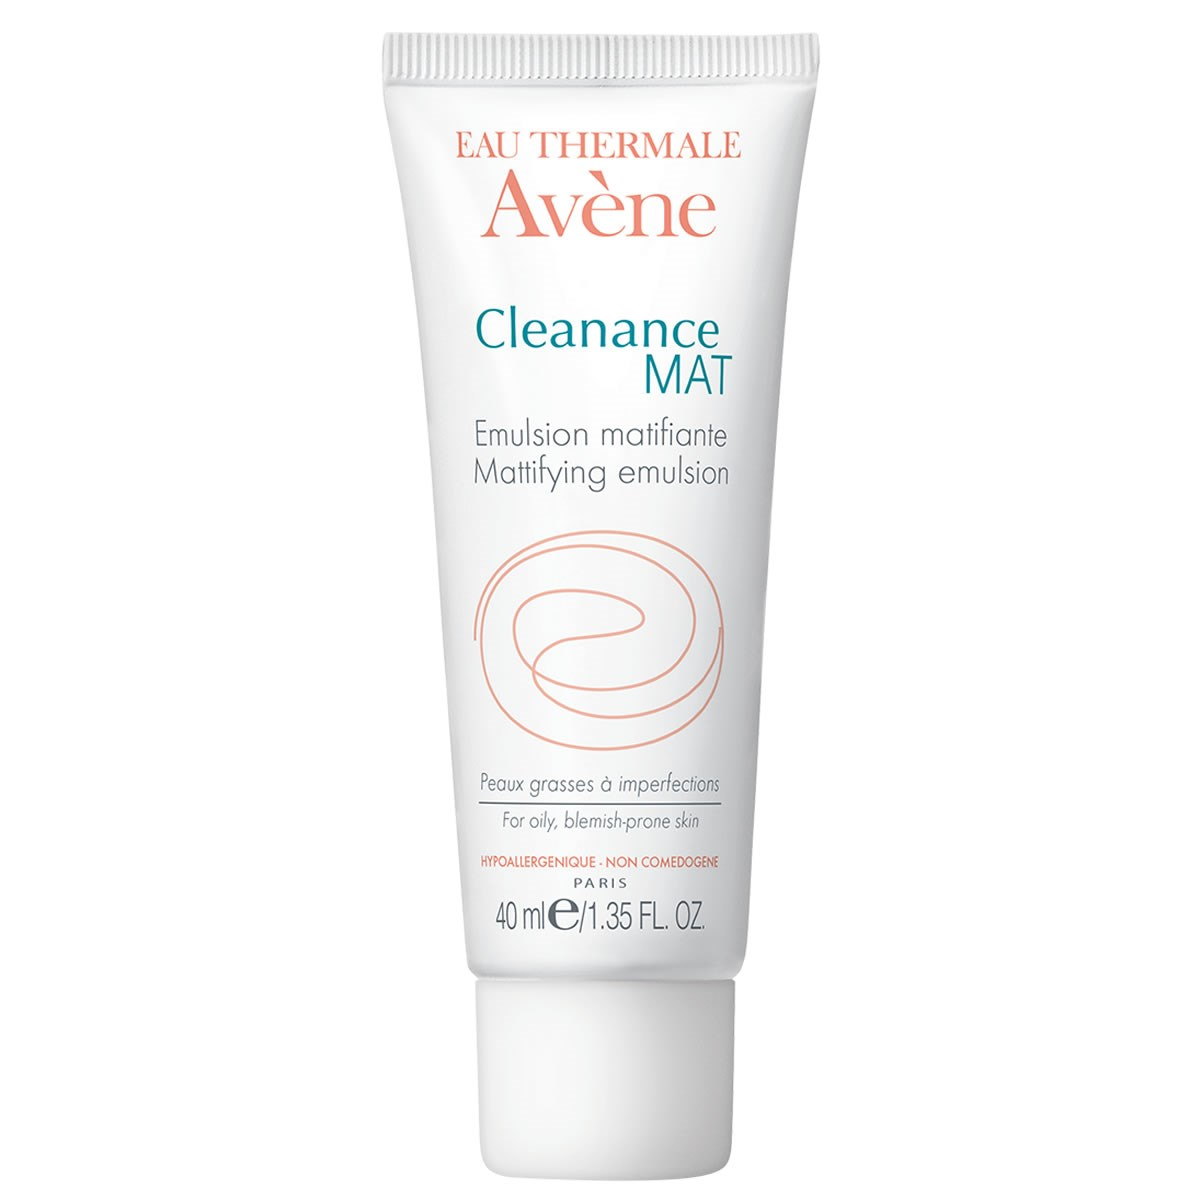 Avene Cleanance MAT Matiffying Emulsion